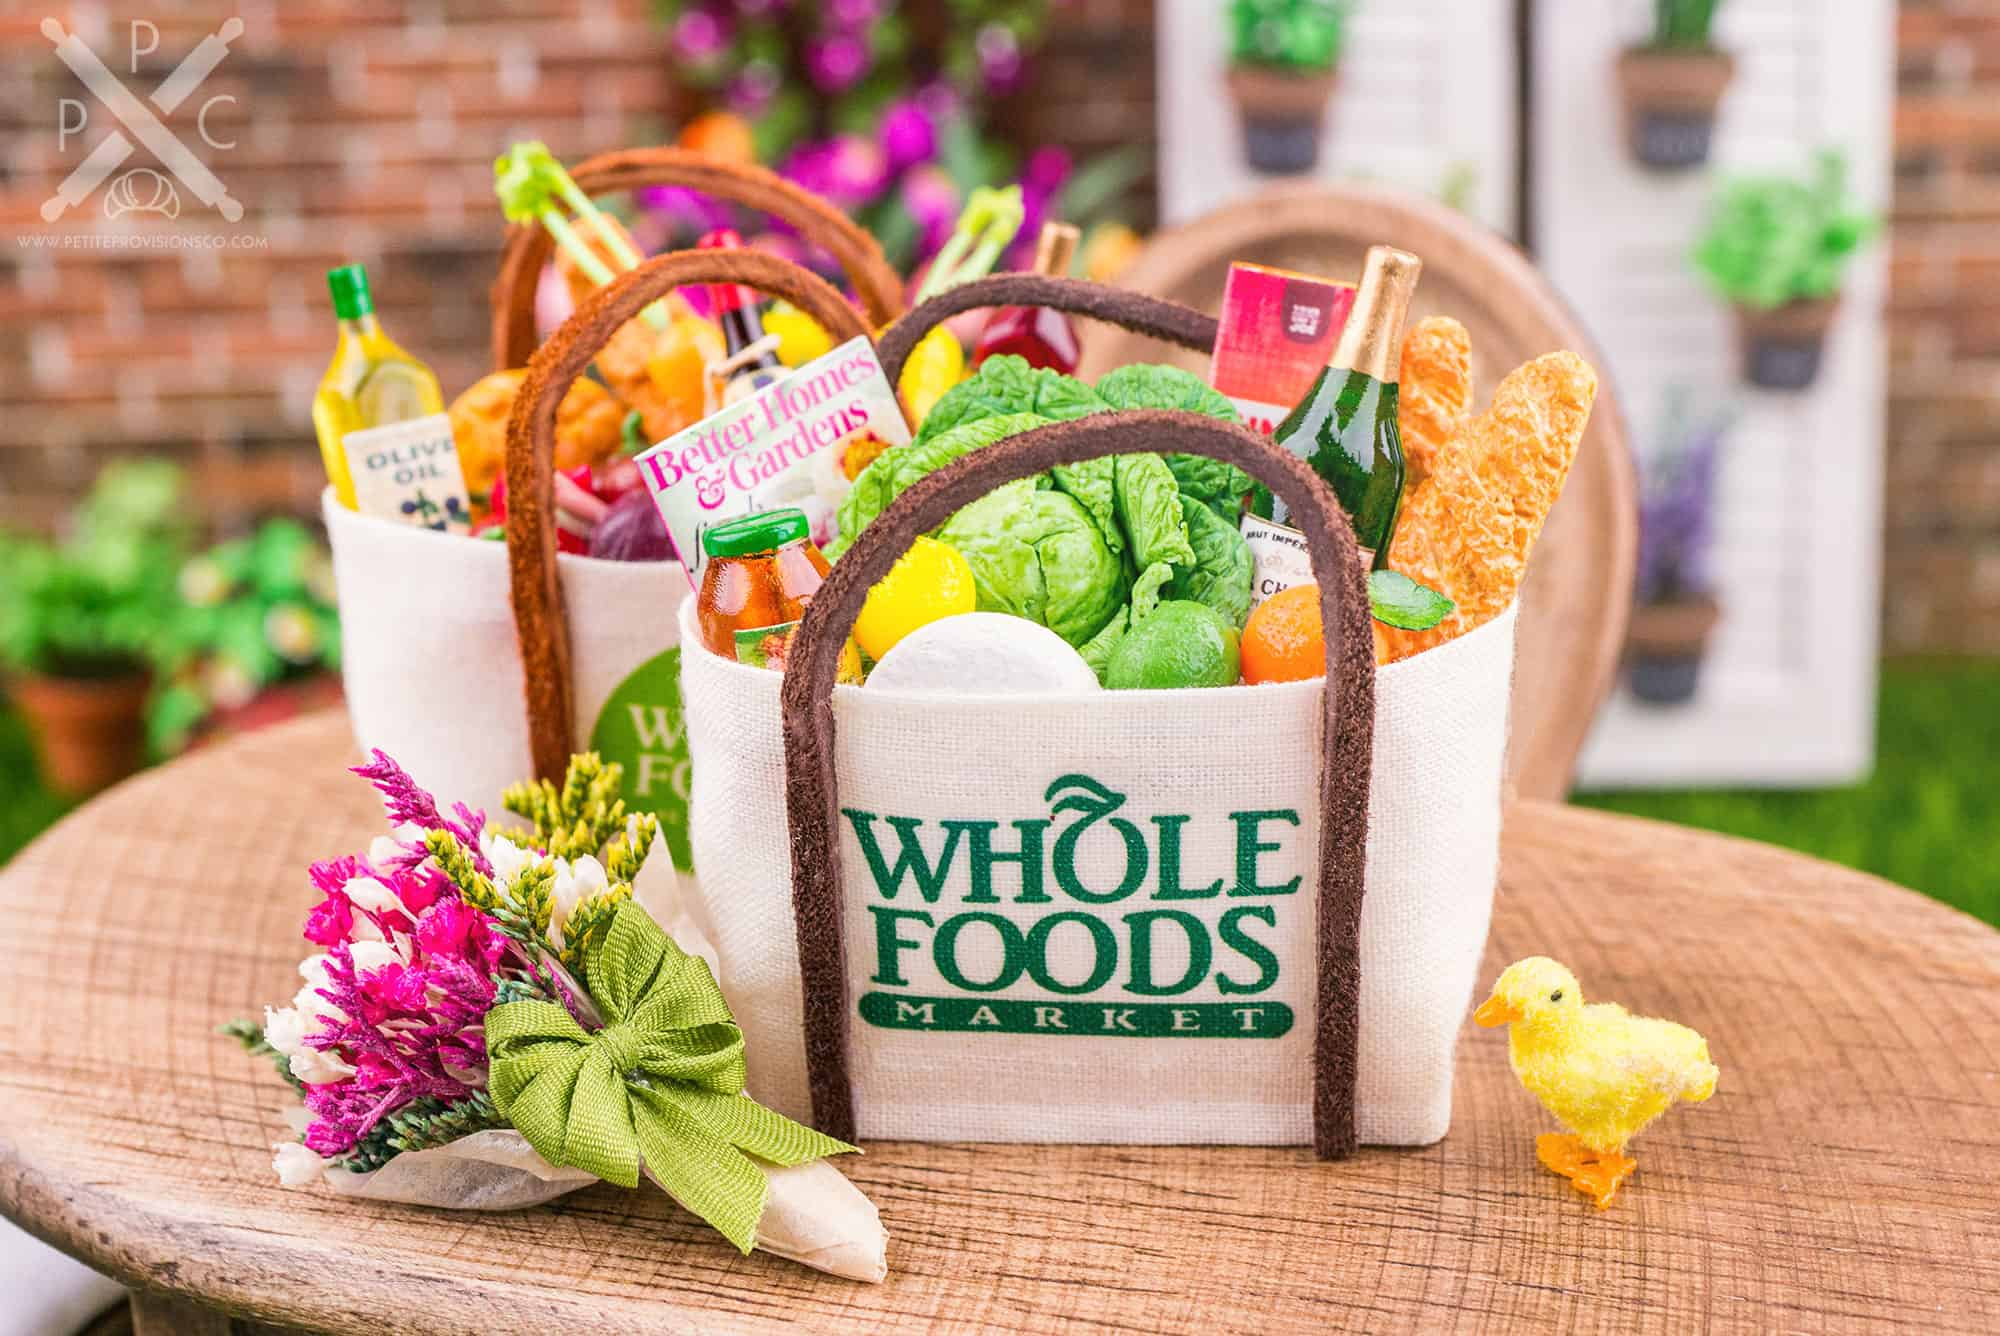 Fill your miniature shopping bag with groceries and other goods from the market